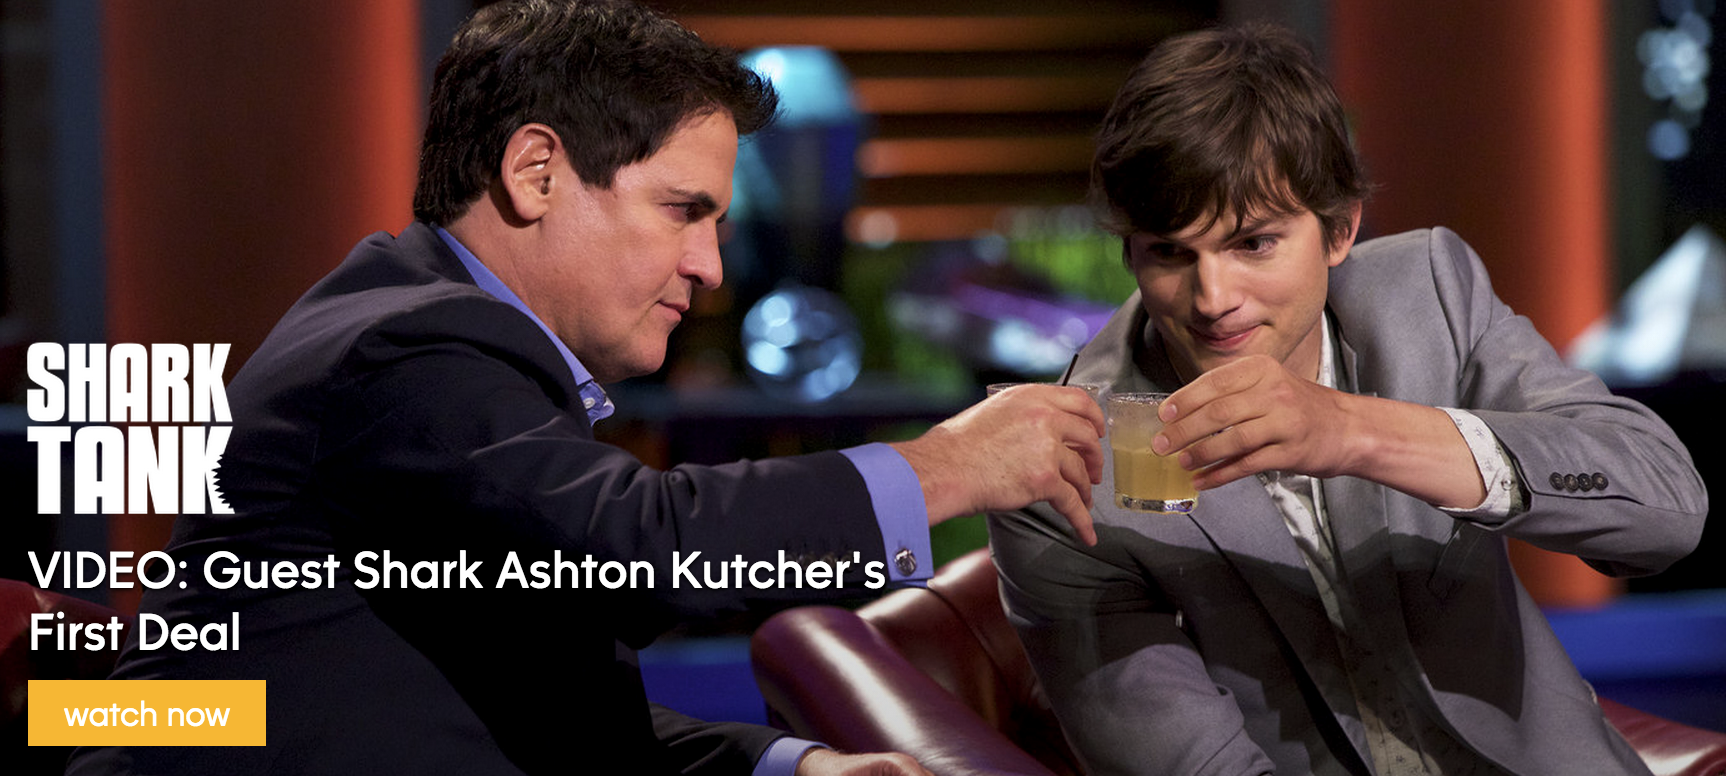 Mark Cuban and Ashton Kutcher on Shark Tank America (Image credit: ABC.com)